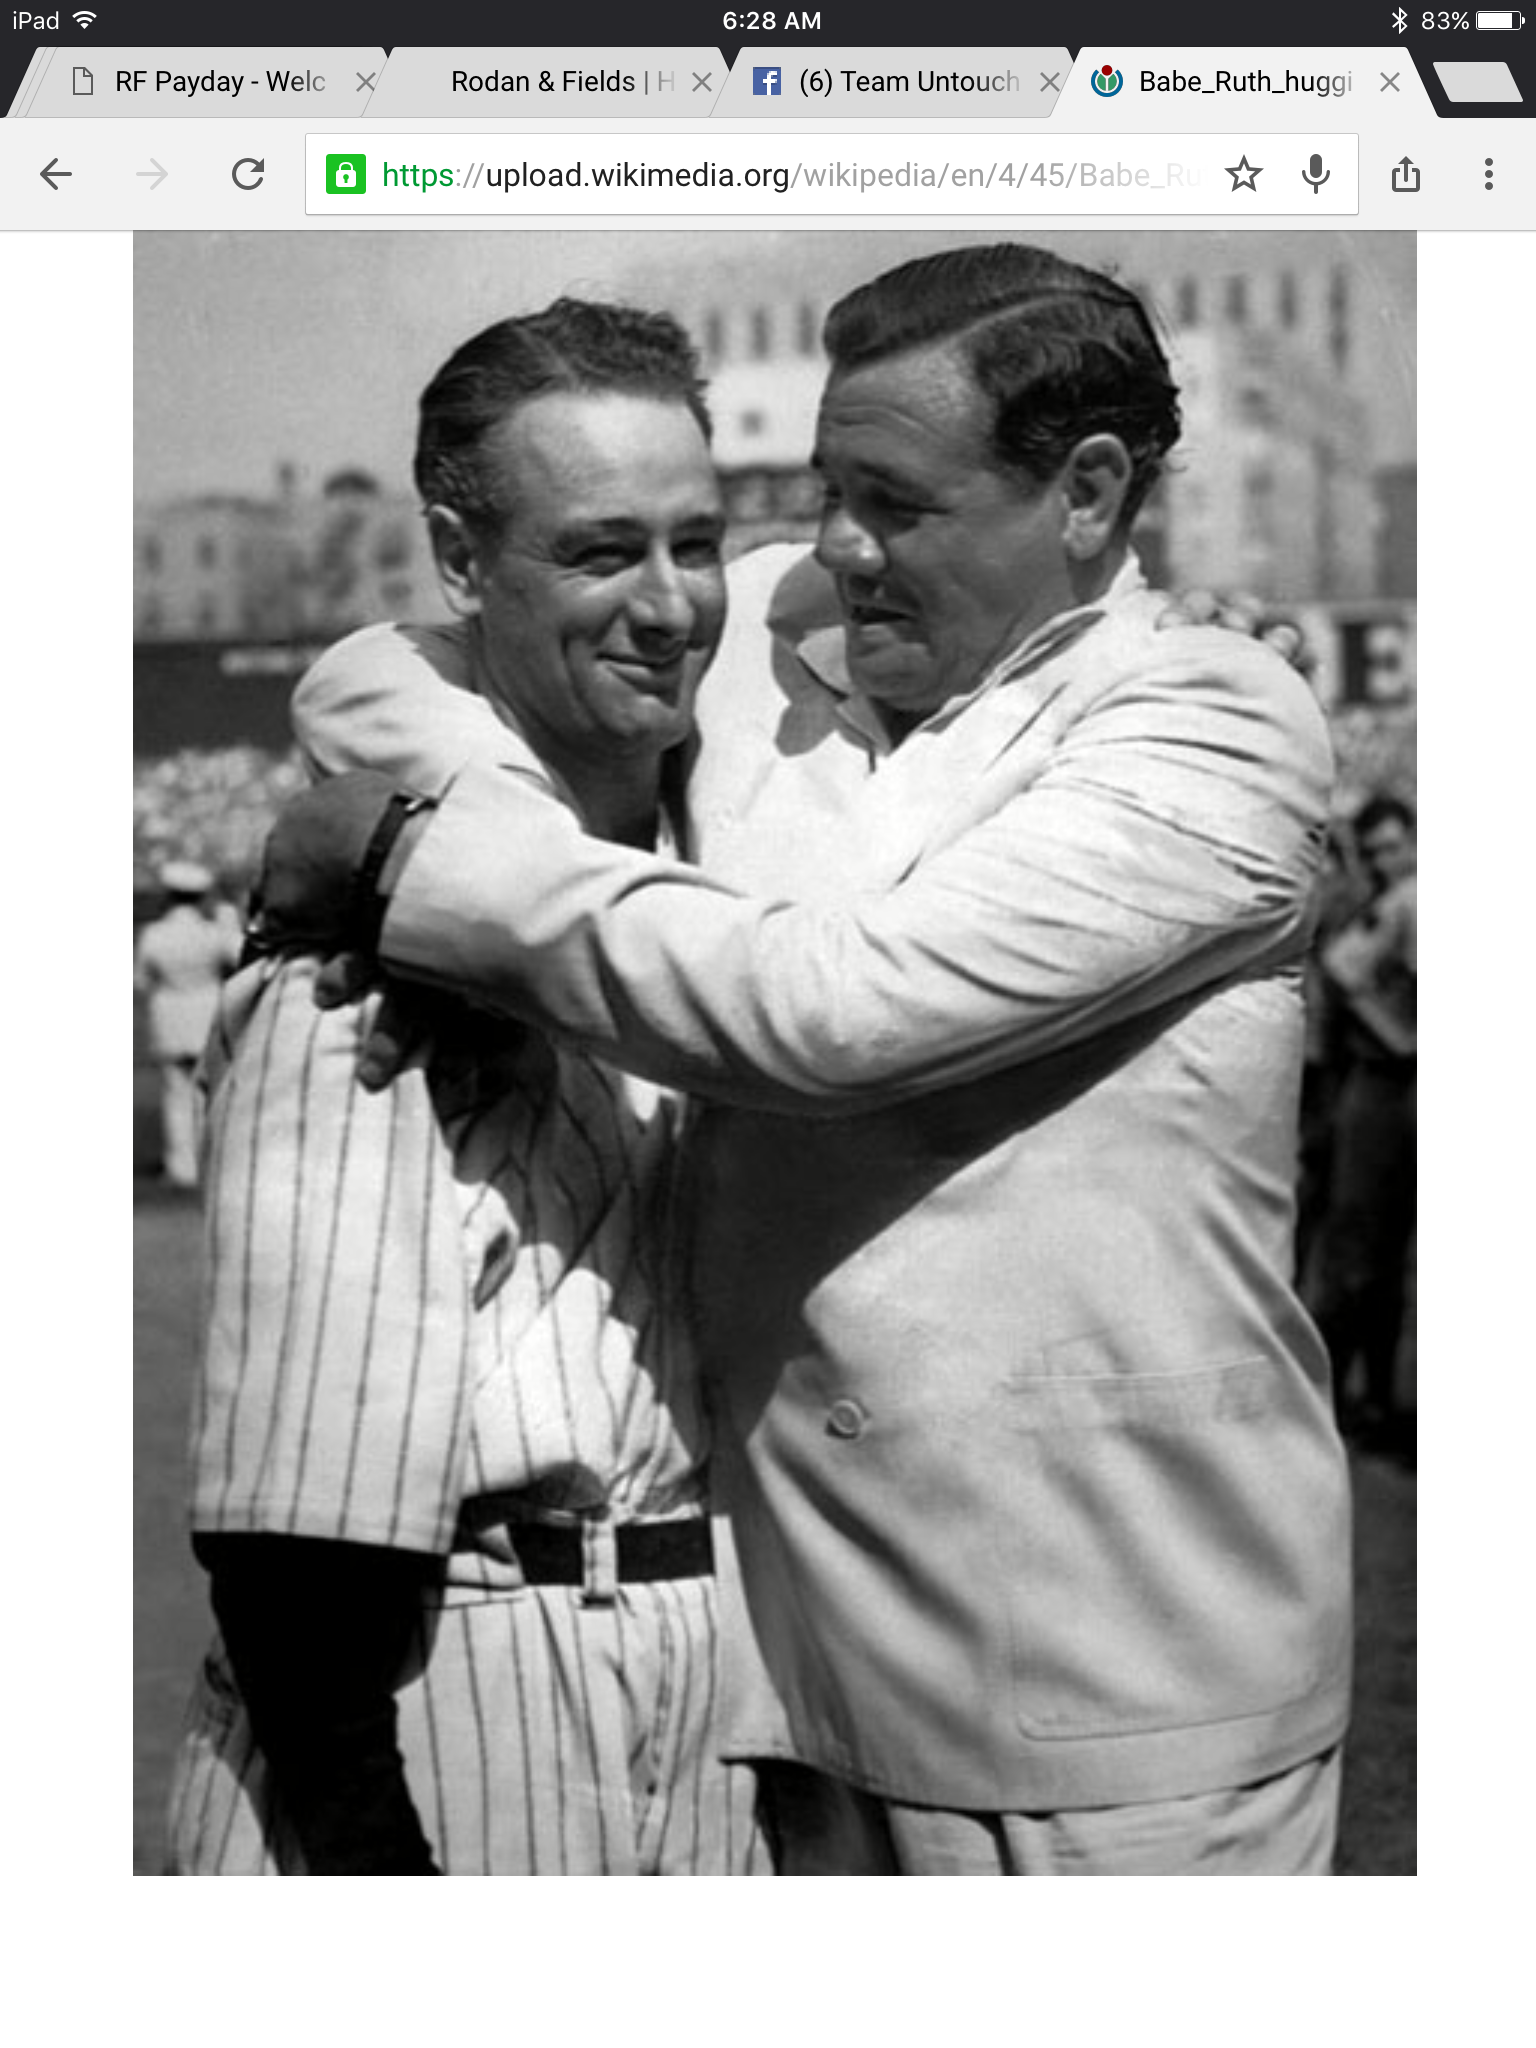 "Lou Gehrig was a Hall of Fame baseball player, who was the first person to be diagnosed with a condition that was debilitating, and which bore his name for a long time. 'Lou Gehrig's Disease' is now called 'ALS'. In the famous speech that he gave at his retirement ceremony at Yankee stadium in 1939 he said, ""I am the luckiest man on the face of the earth"". He held the batting record broken 60 years later by Cal Ripkin, Jr. The illness forced his early retirement and he was go"